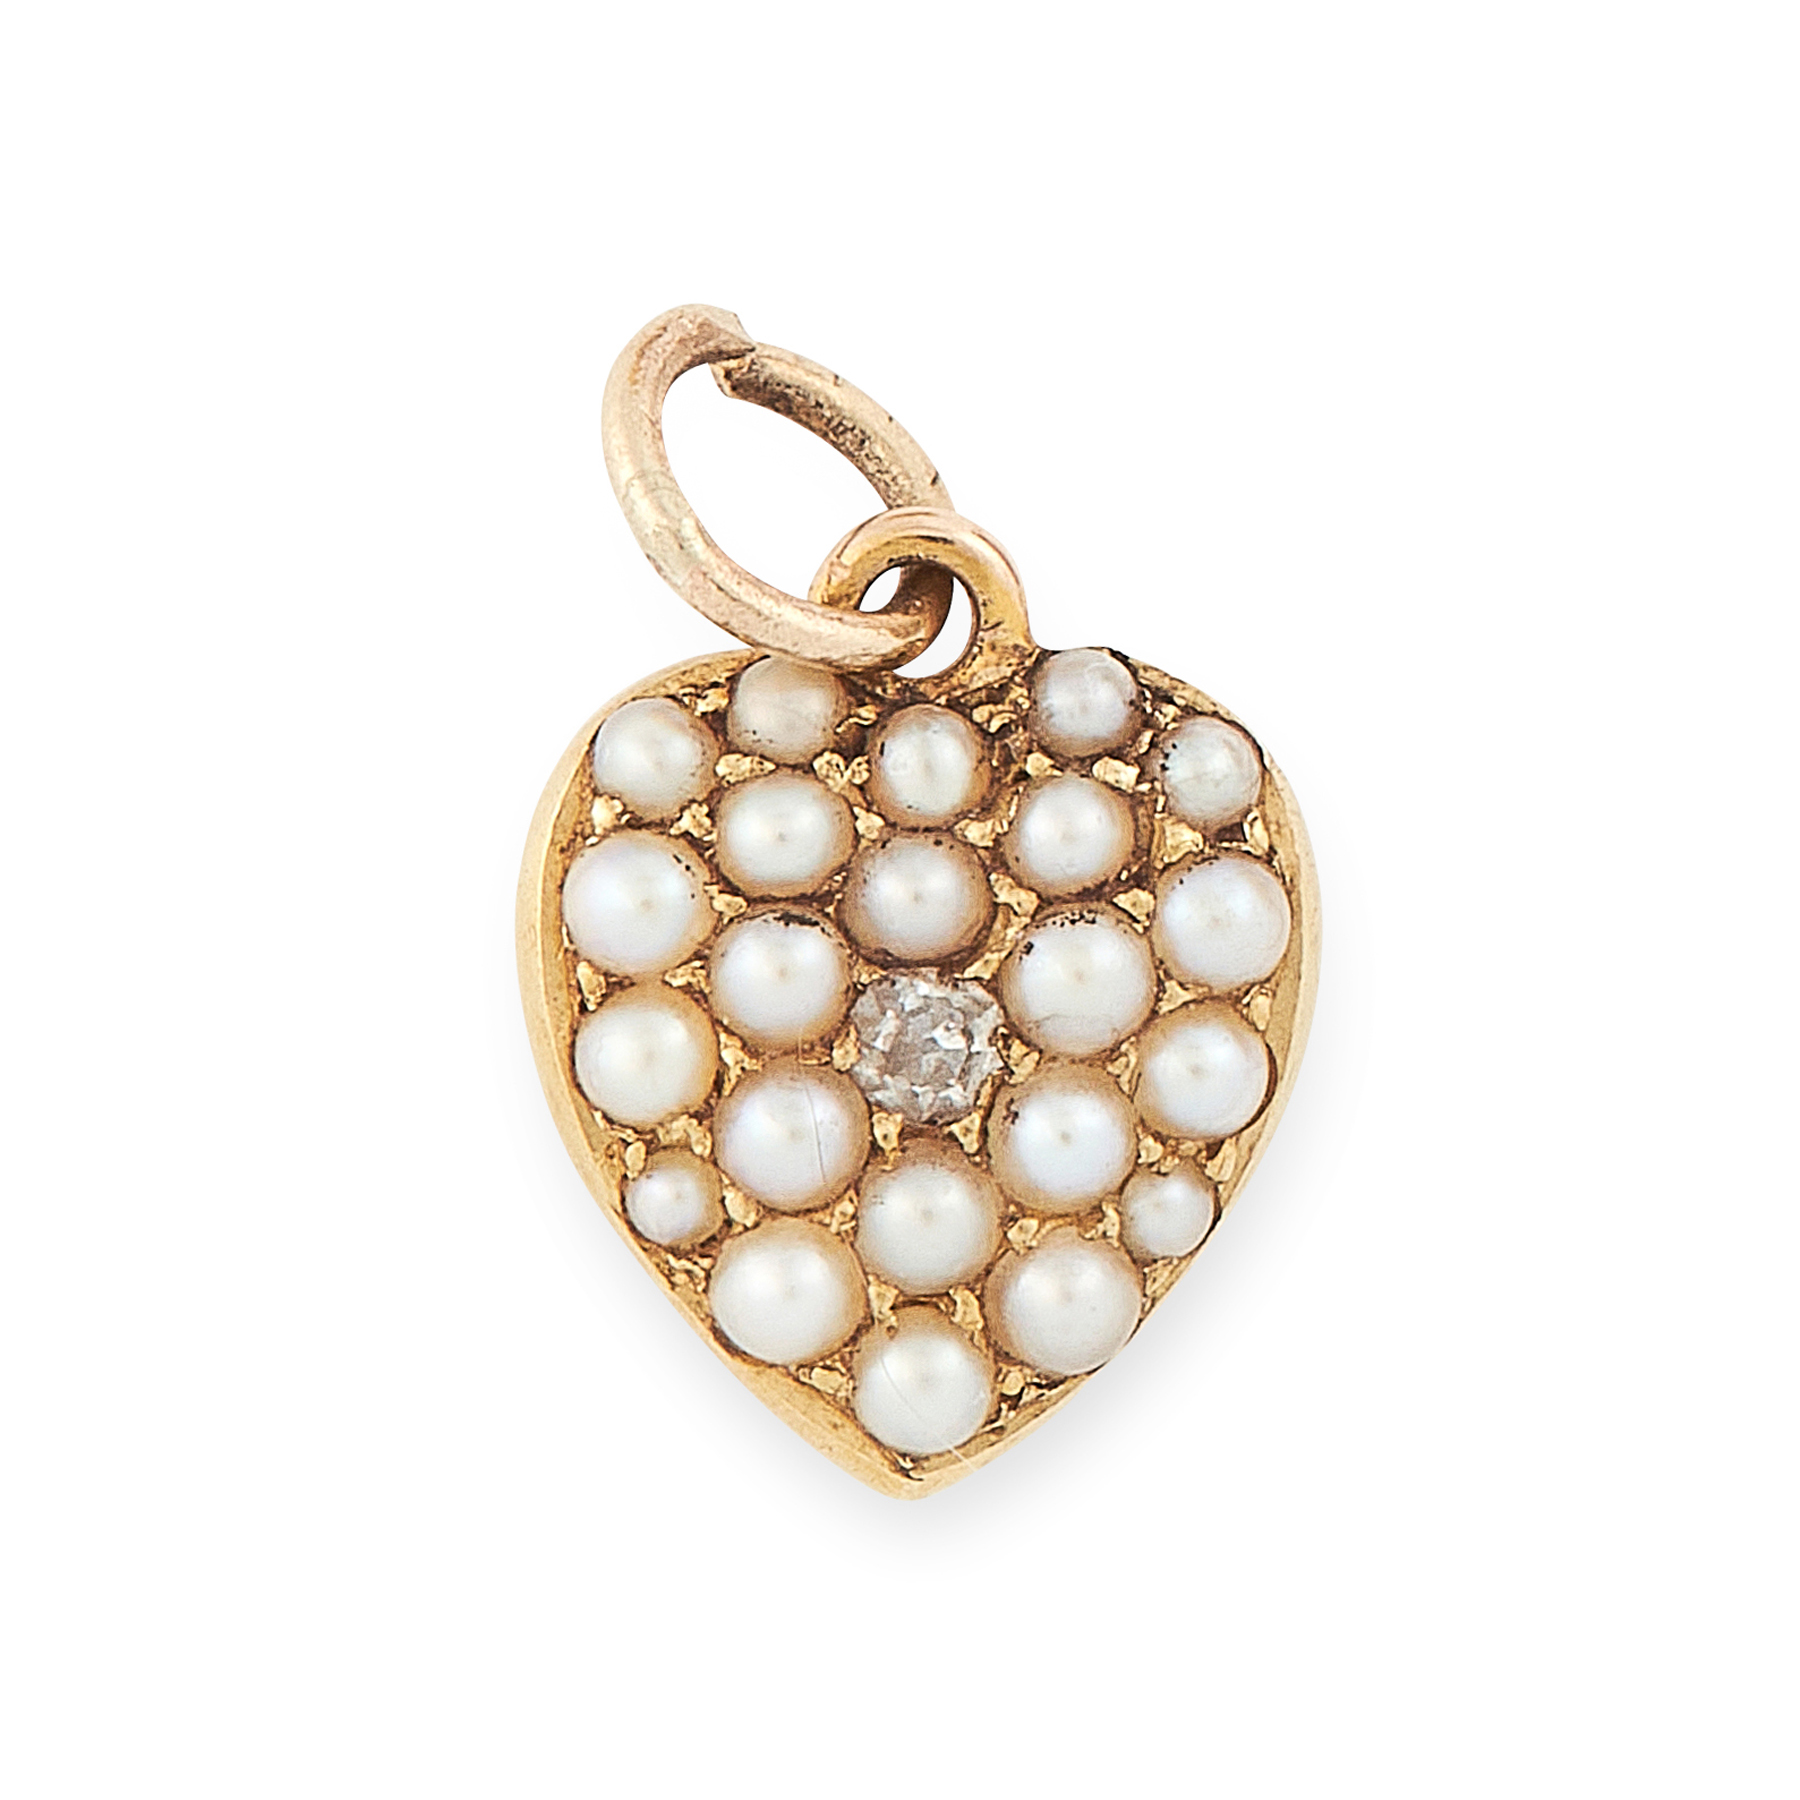 AN ANTIQUE PEARL AND DIAMOND HEART PENDANT / CHARM in 15ct yellow gold, designed as a heart, set